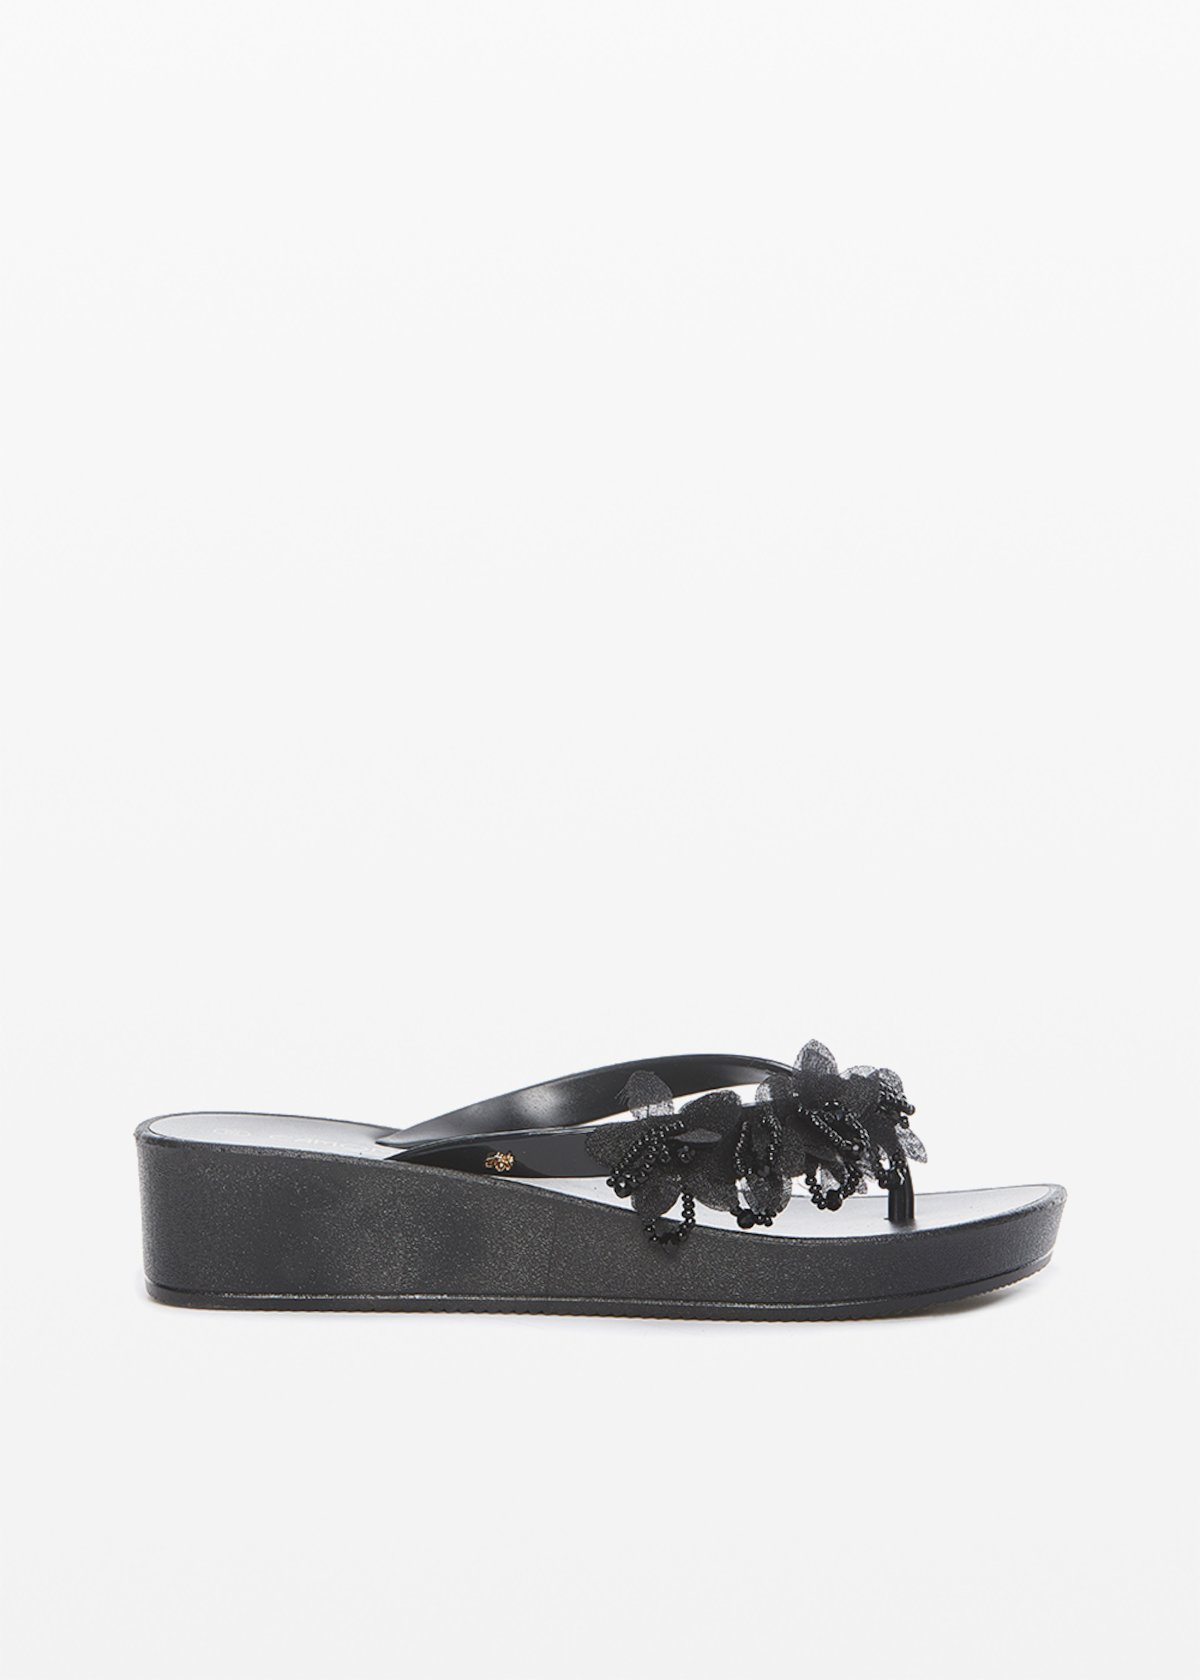 Clelia flops with flower and stones detail - Black - Woman - Category image